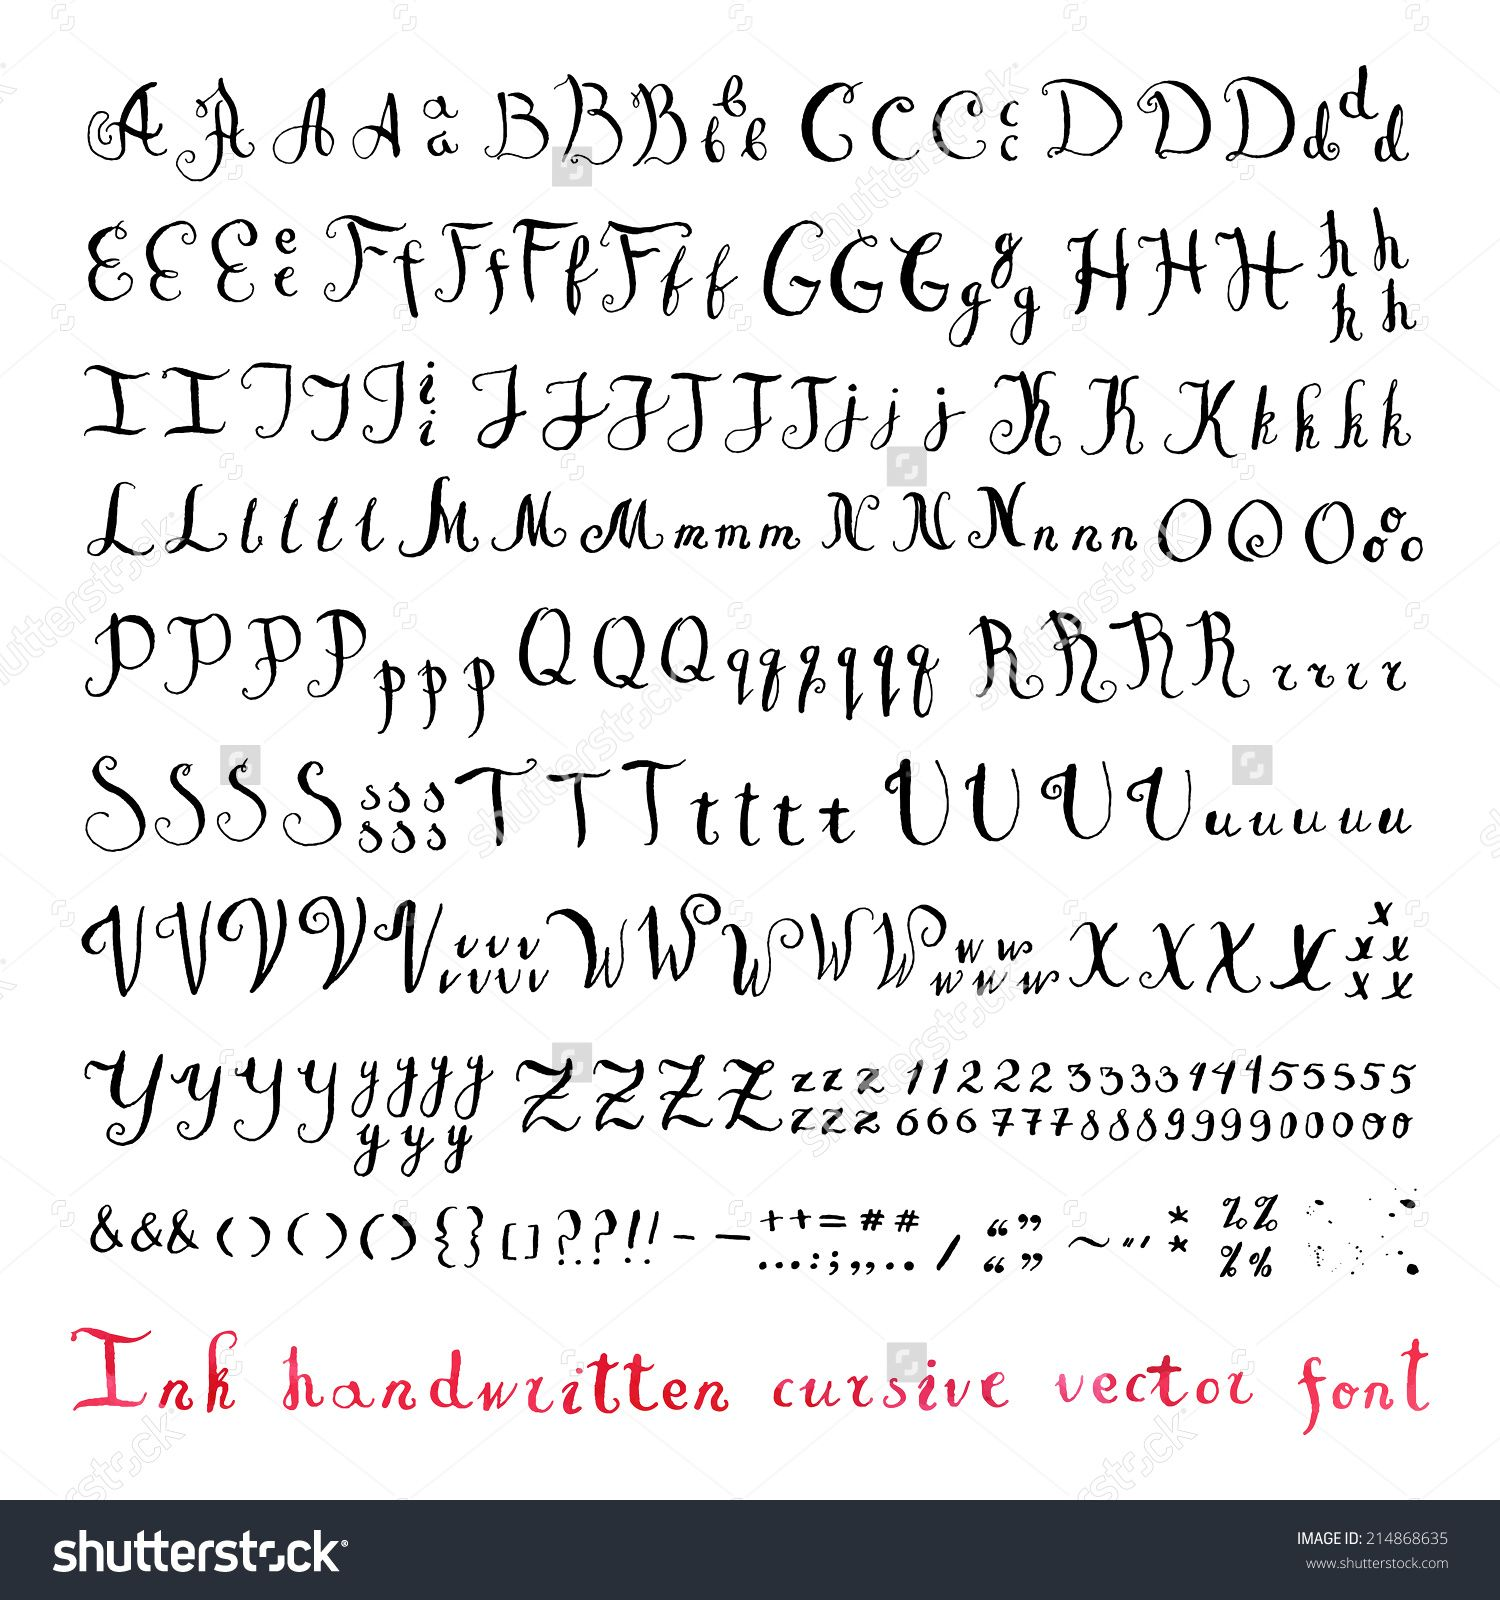 Worksheet How To Write A F In Cursive worksheet how to write a f in cursive mikyu free pinterest the worlds catalogue of ideas learn more at